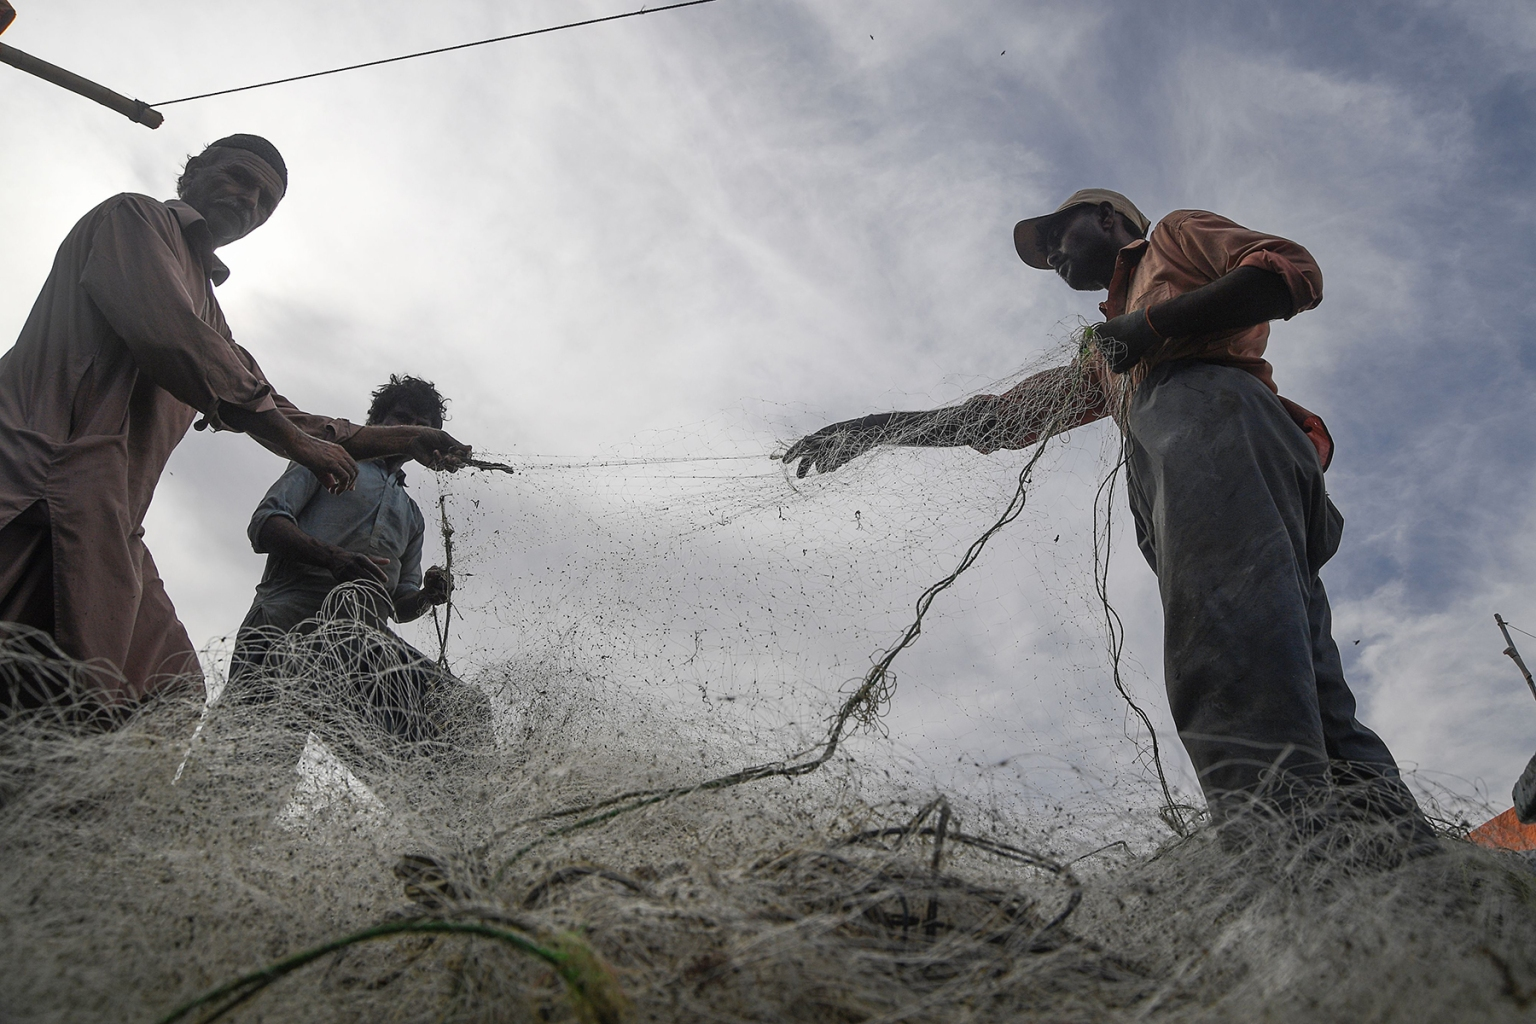 Pakistani fishermen prepare their nets in Karachi on April 3. ASIF HASSAN/AFP/Getty Images